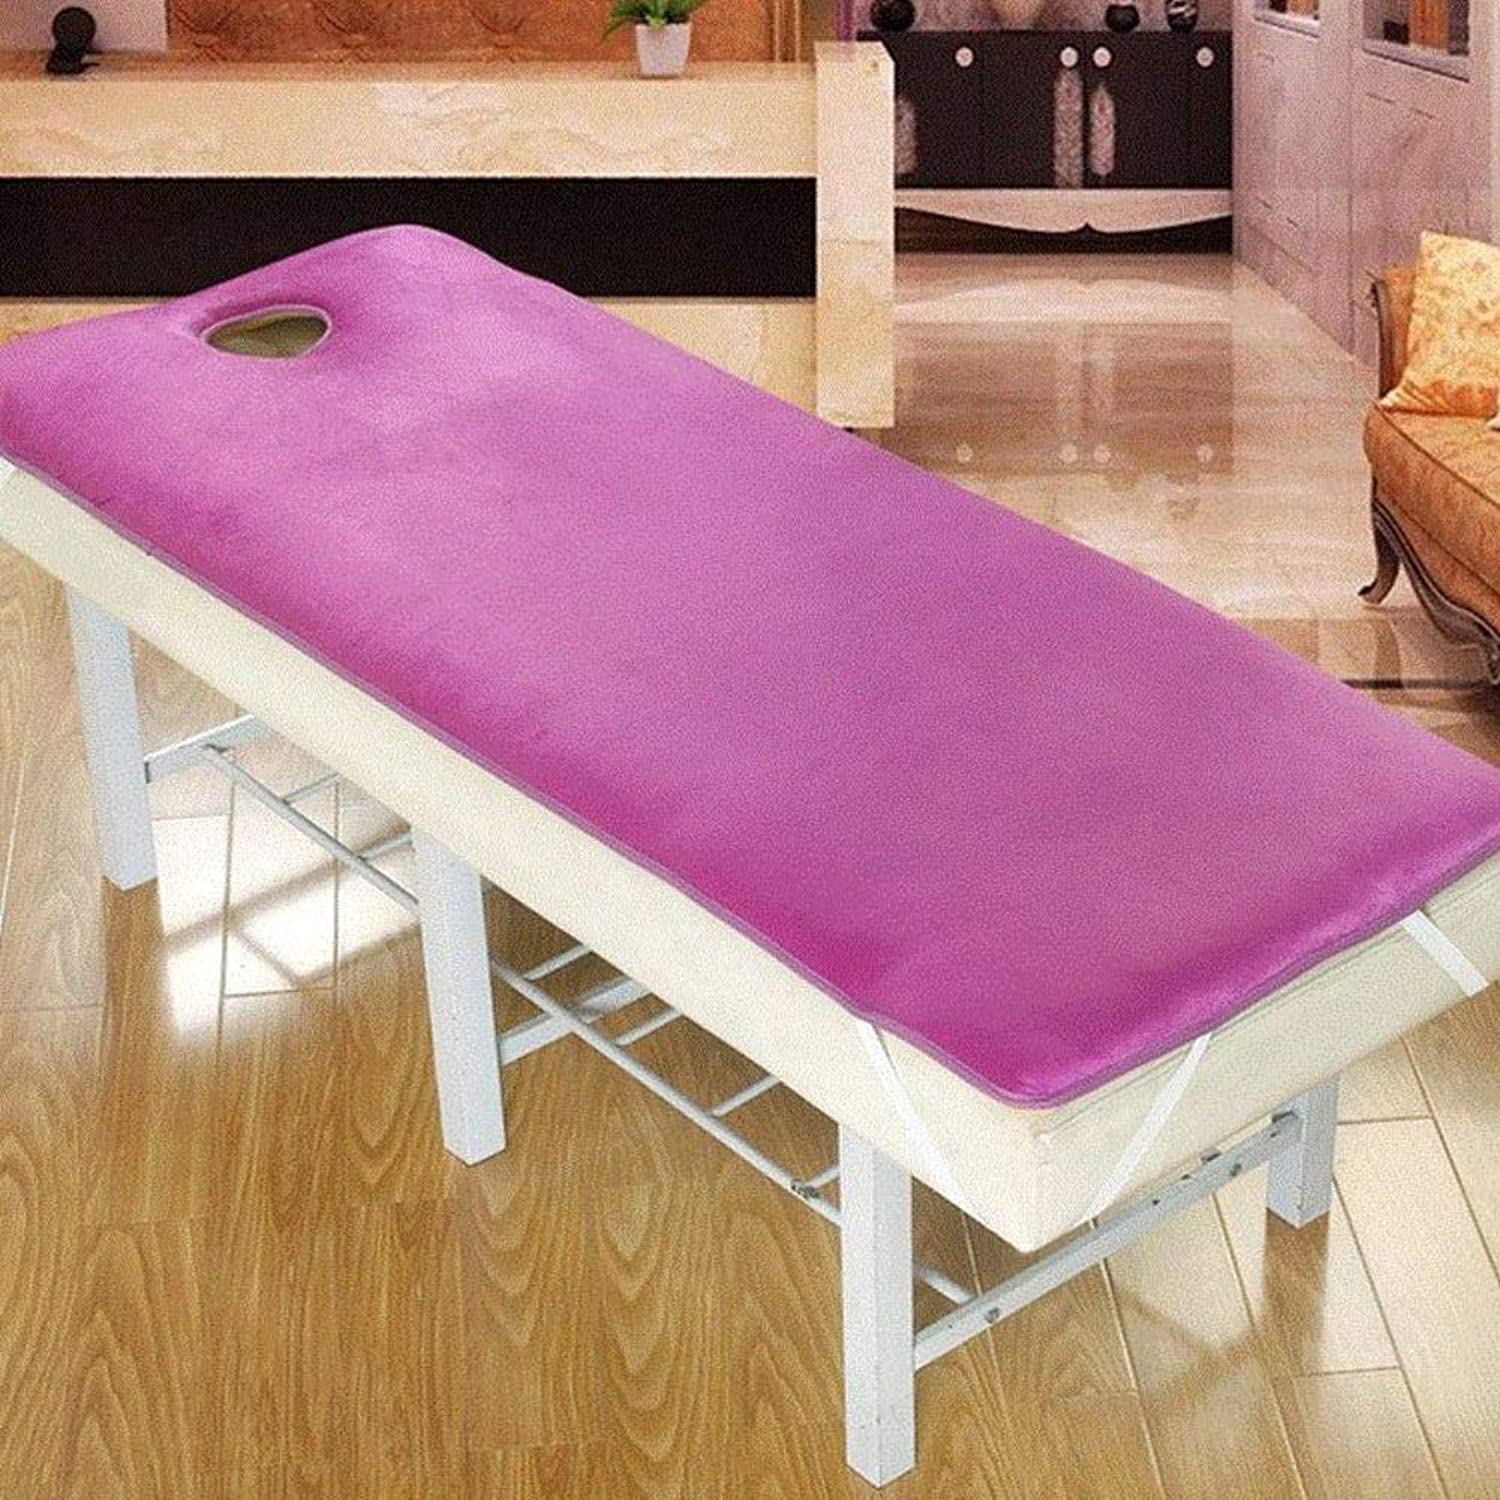 Soft Cotton pad Beauty Mattress Topper,Thick Non-Slip Mattress Elastic Massage Beauty Salon Premium Hotel Quality Tatami Mattress-Purple 180x60cm(71x24inch)